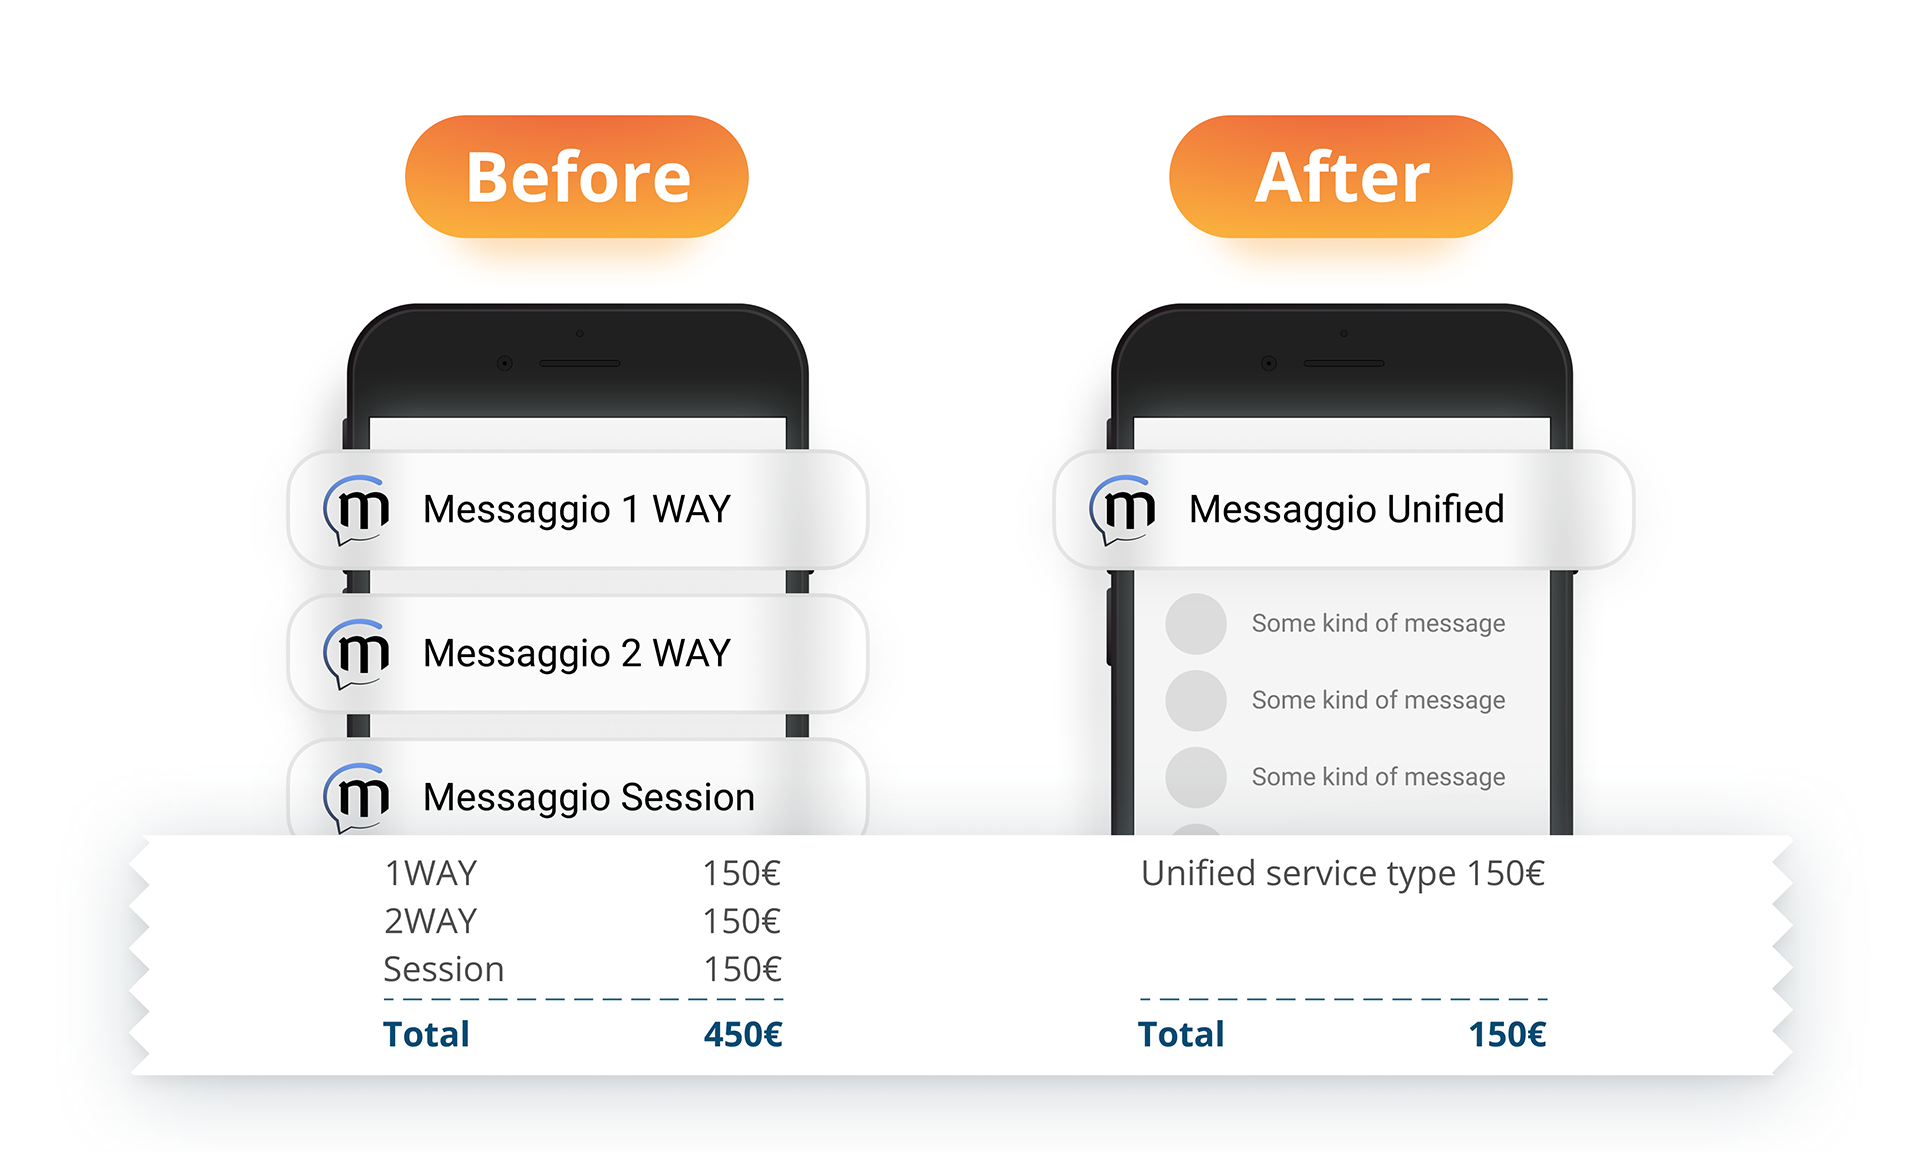 Difference between separate service types and Unified service type